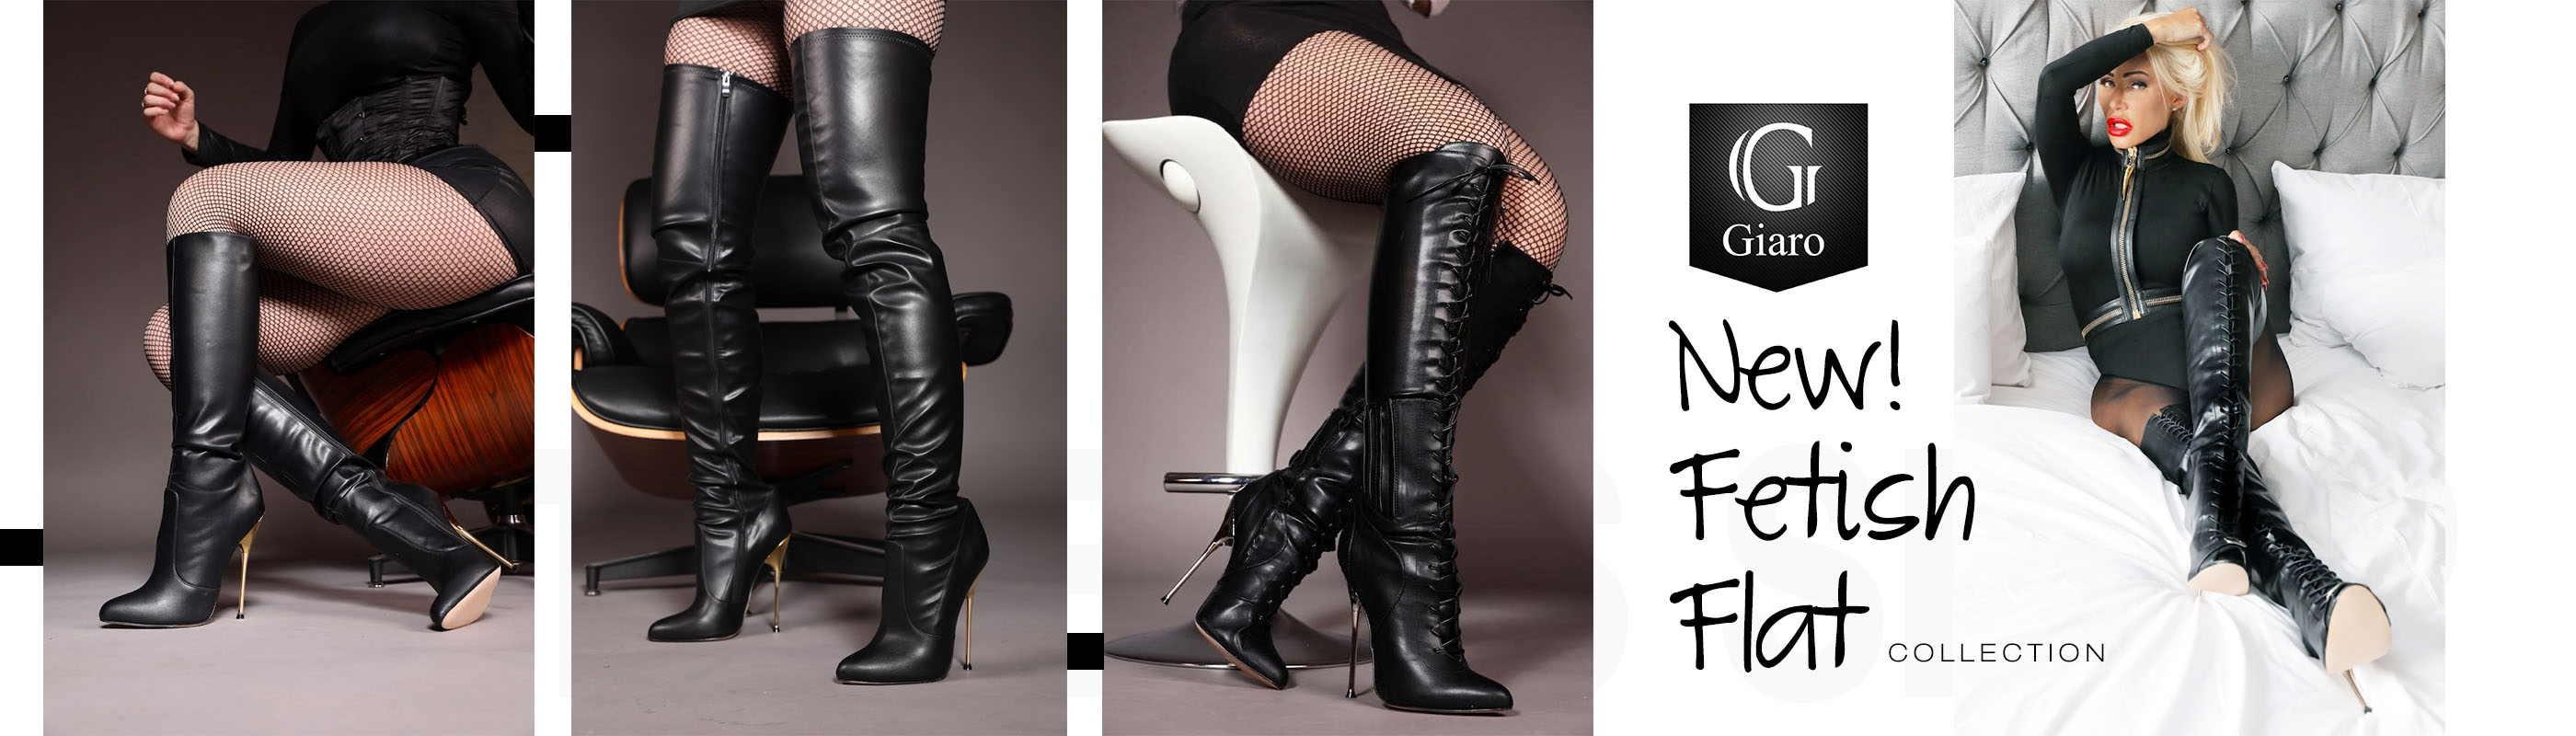 Boot desire fetish apologise, but